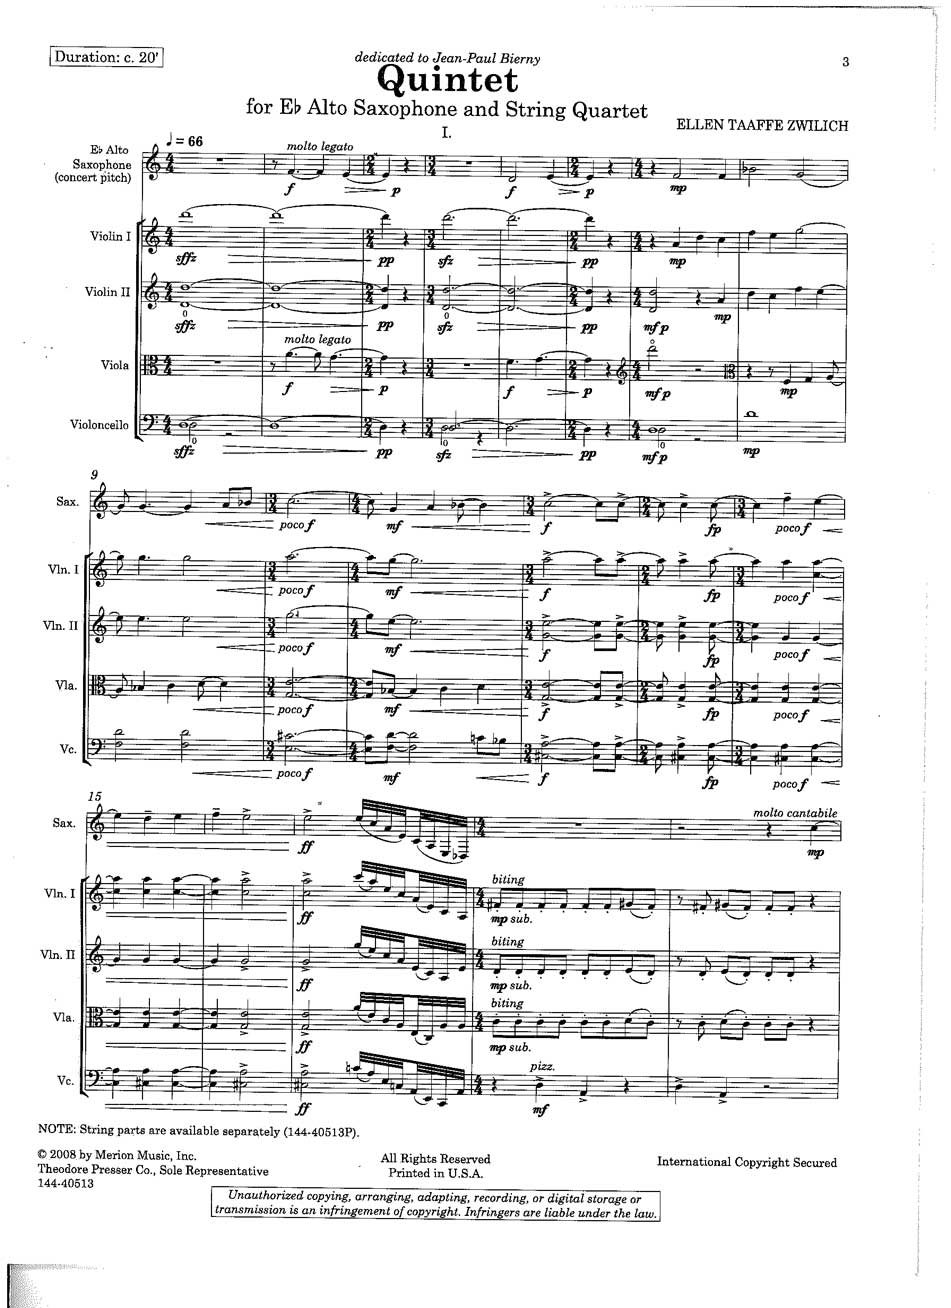 Quintet: for Eb Alto Saxophone and String Quartet (Solo Part and Full Score)